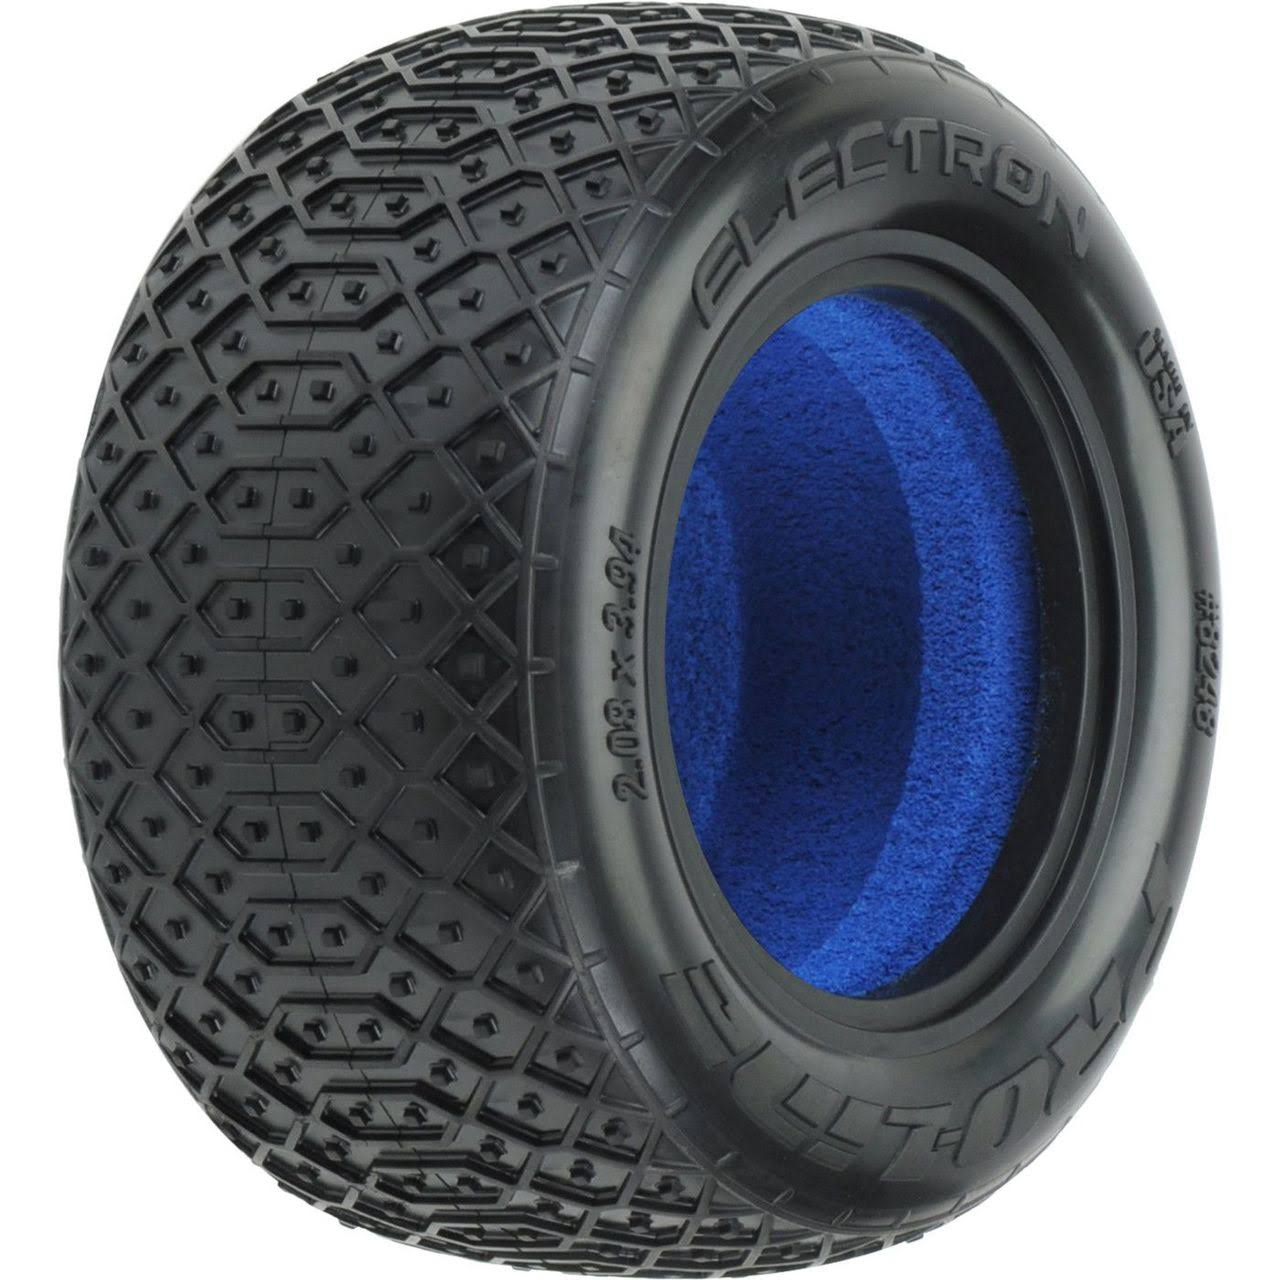 Pro Line Racing Electron T 2.2 Mc Clay Off Road Truck Tires